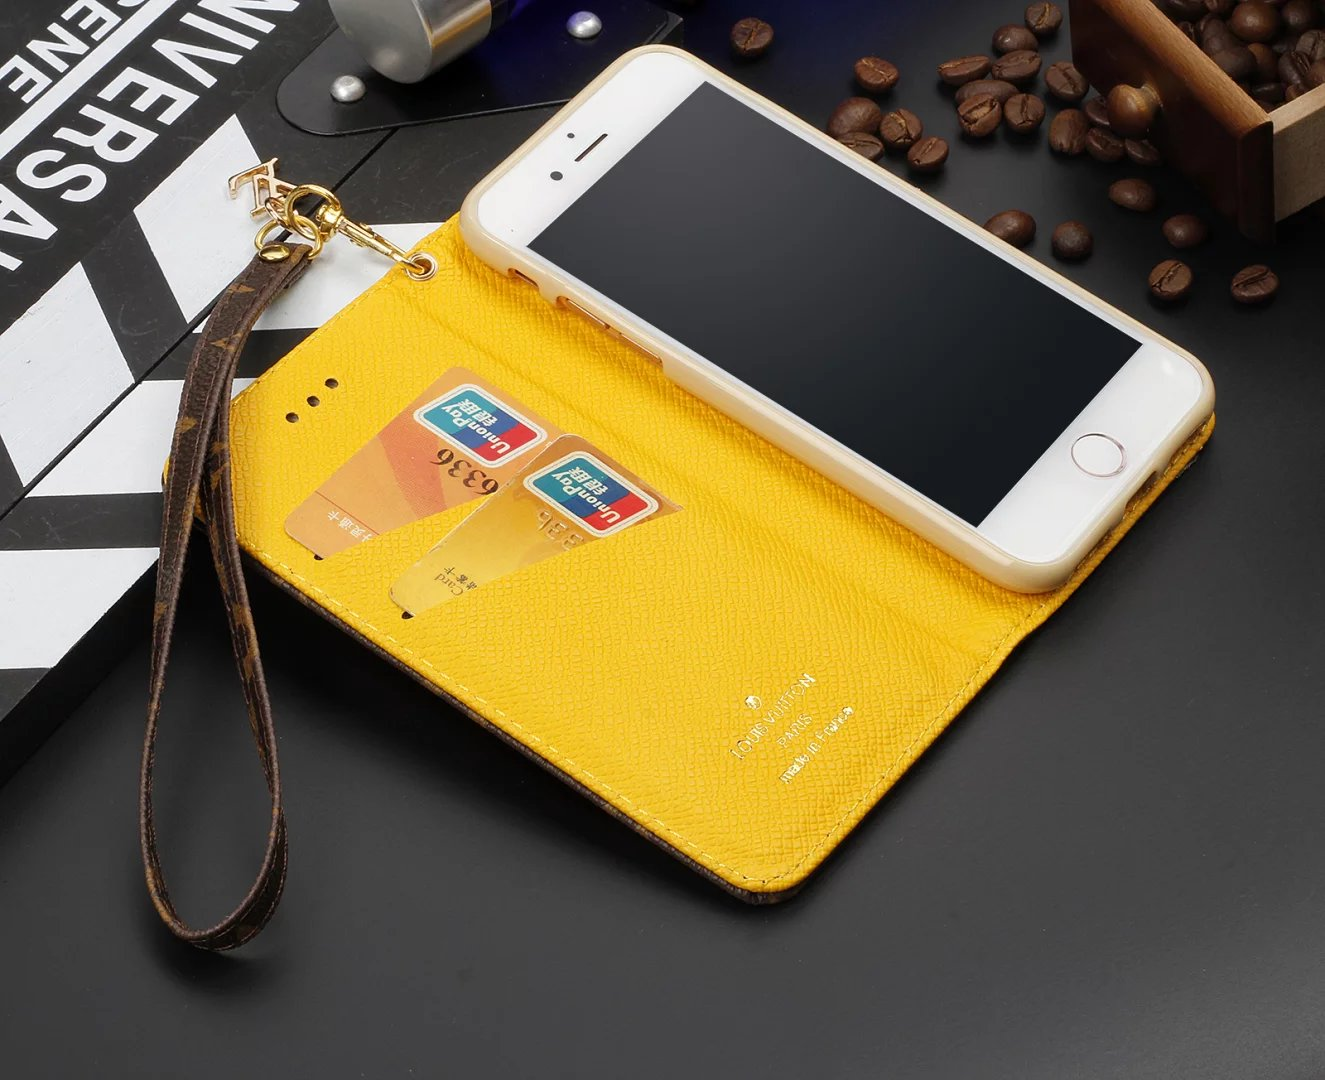 cases for the iphone 6s Plus good iphone 6s Plus cases fashion iphone6s plus case apple store screen protector designer iphone 6 wallet iphone battery mah phone cases 6s find me a phone case tory burch iphone 6 case